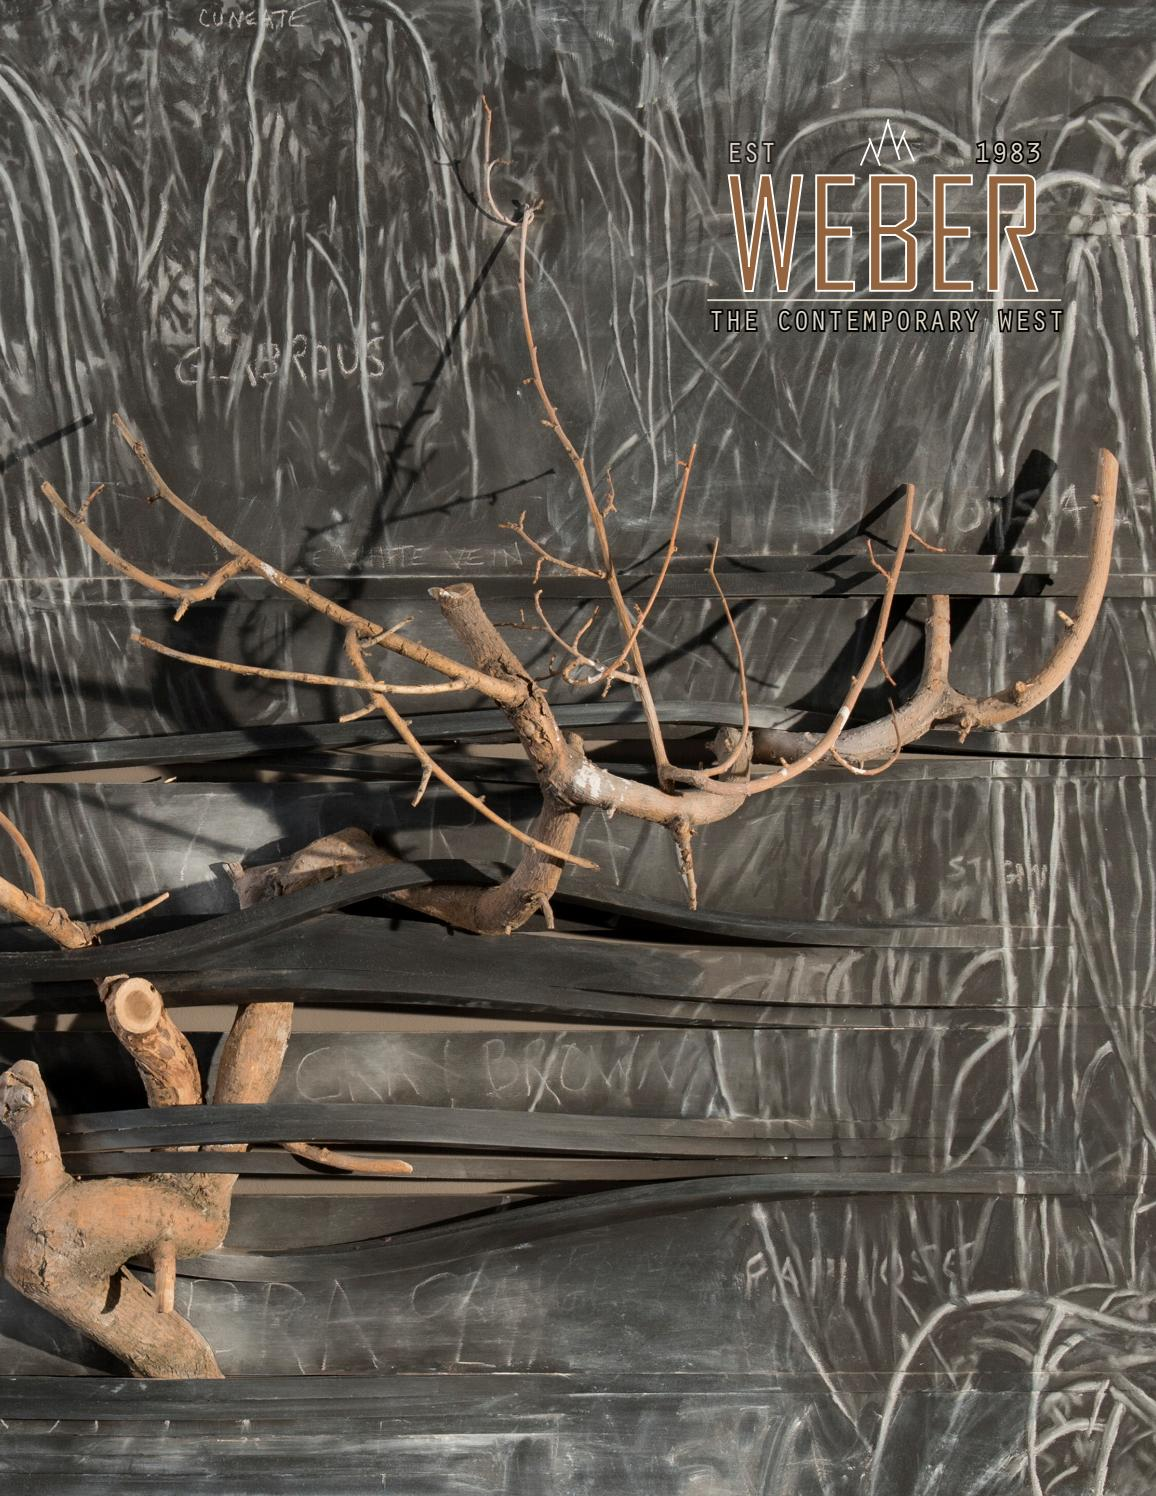 Weber by Weber—The Contemporary West - issuu on